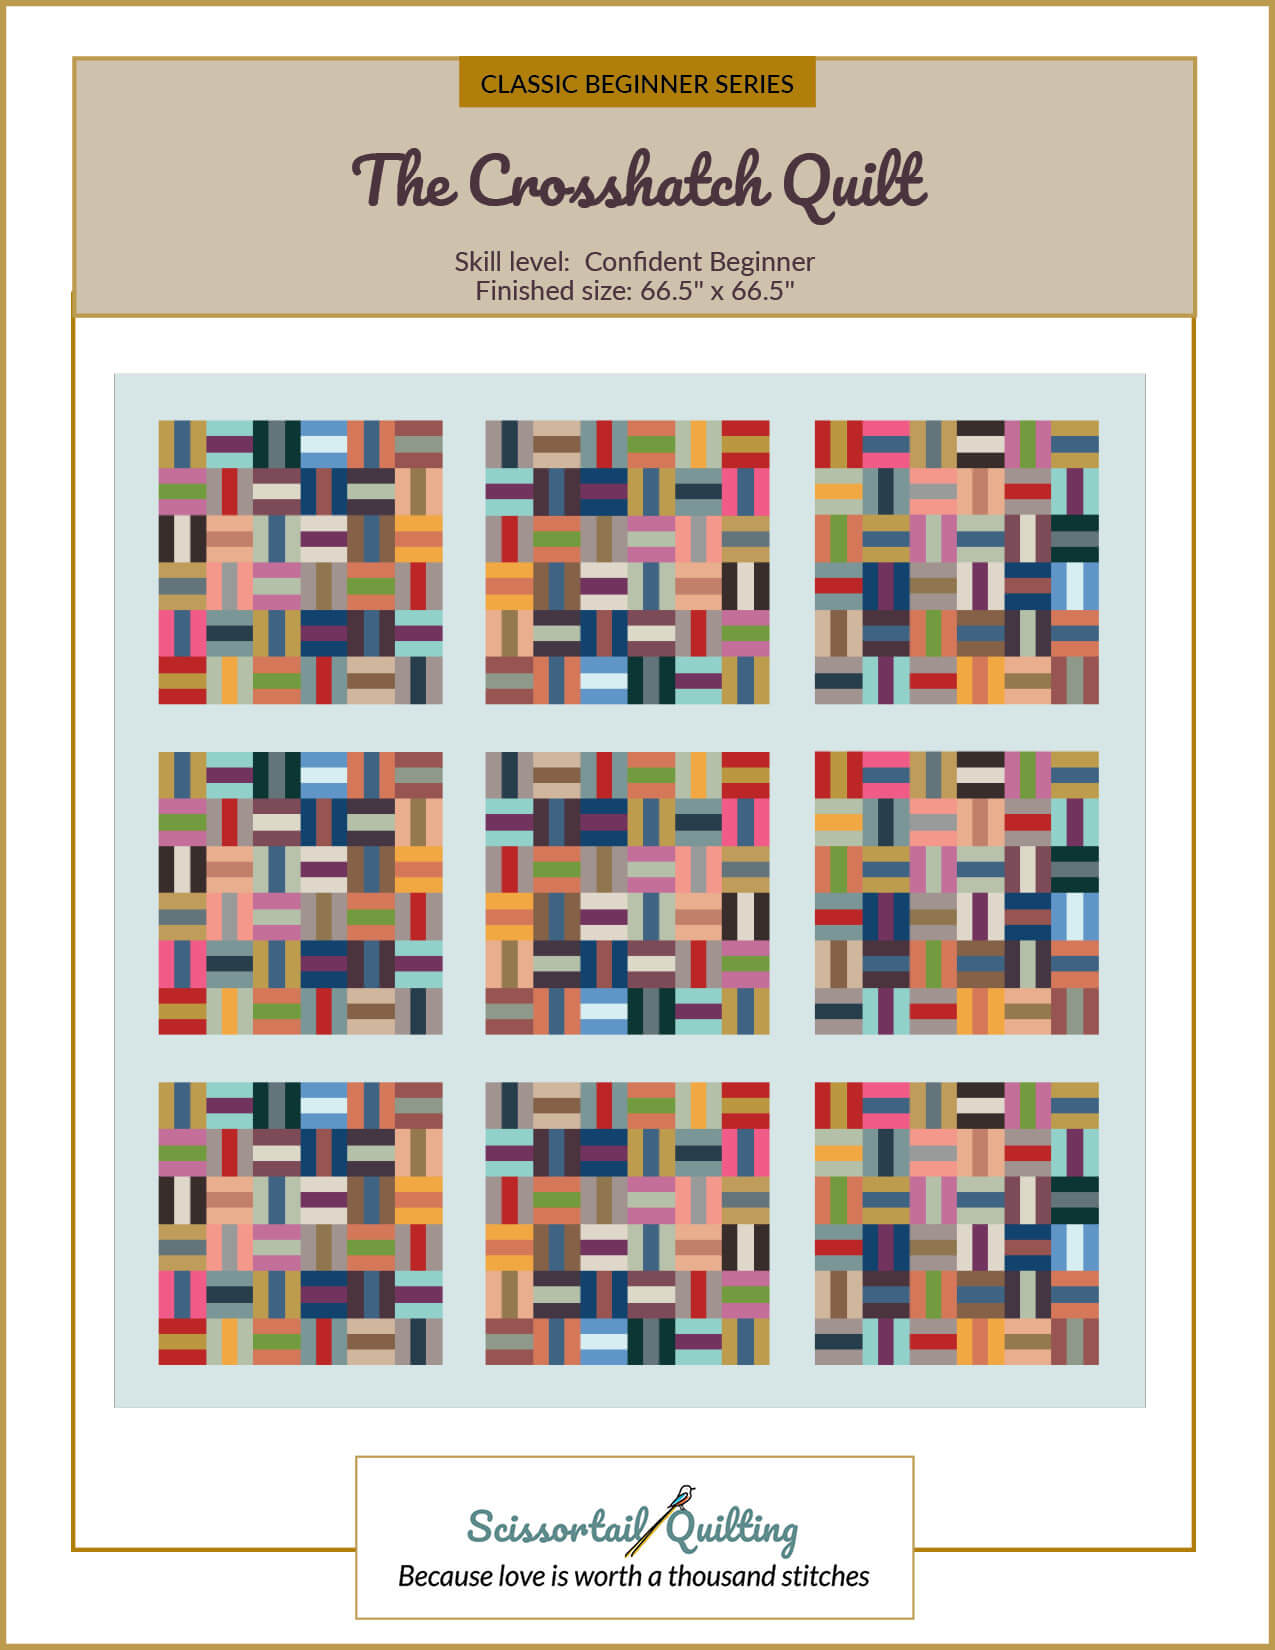 Shop image for Crosshatch Quilt